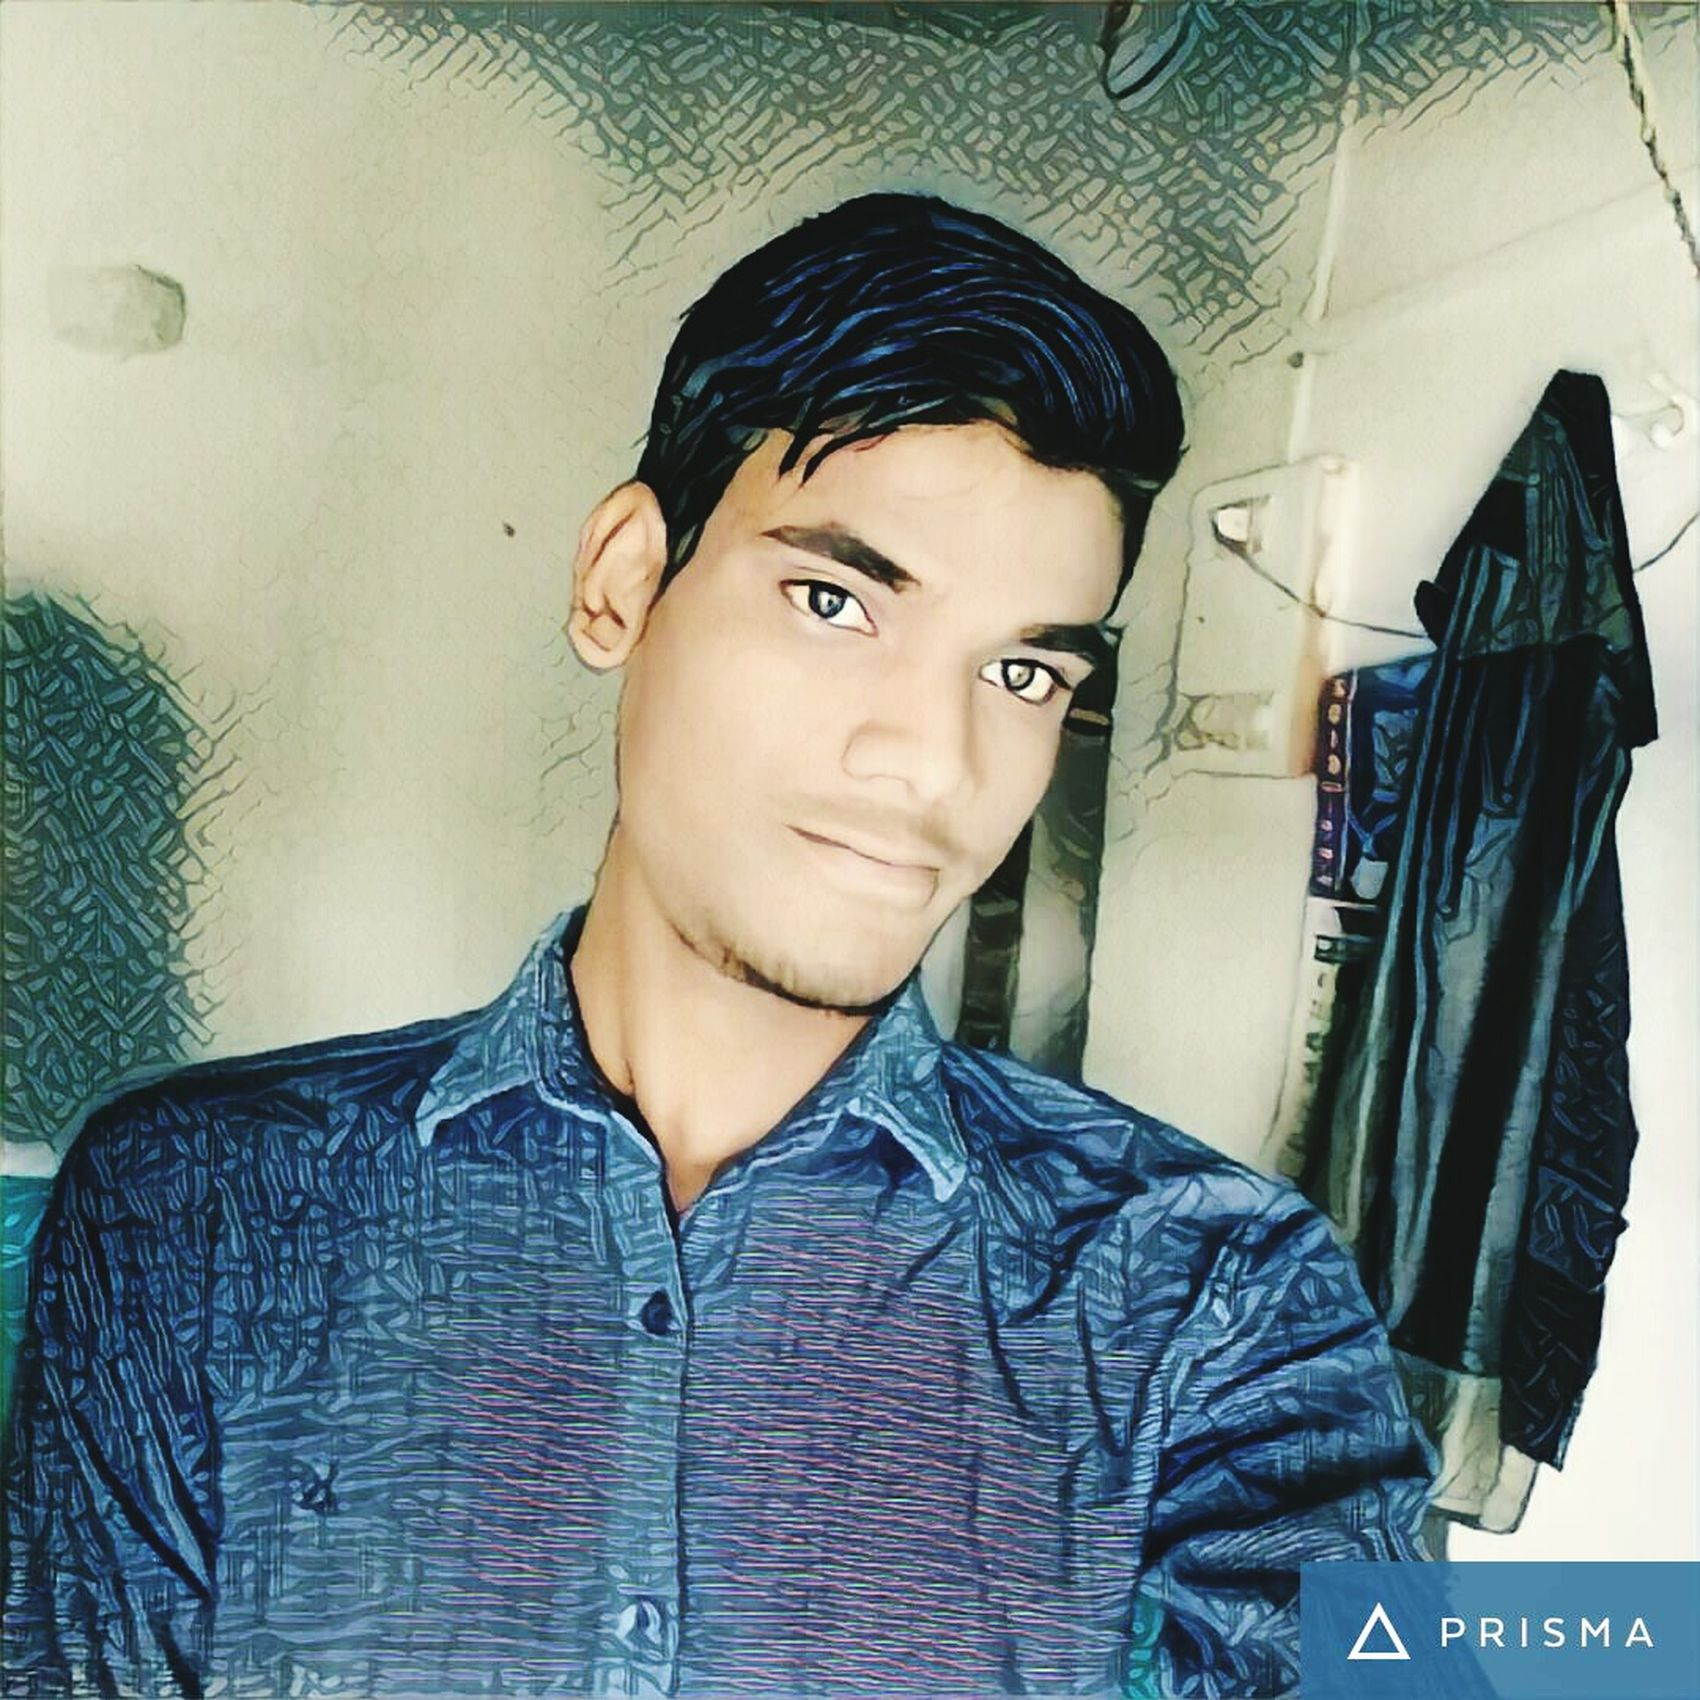 Hi Friends Akramroxen ASif ArmanIndoors  Kings_third_age Zubair's_PhotoArt Front View Casual Clothing Focus On Foreground Person Young Adult Confidence  Contemplation Attitude